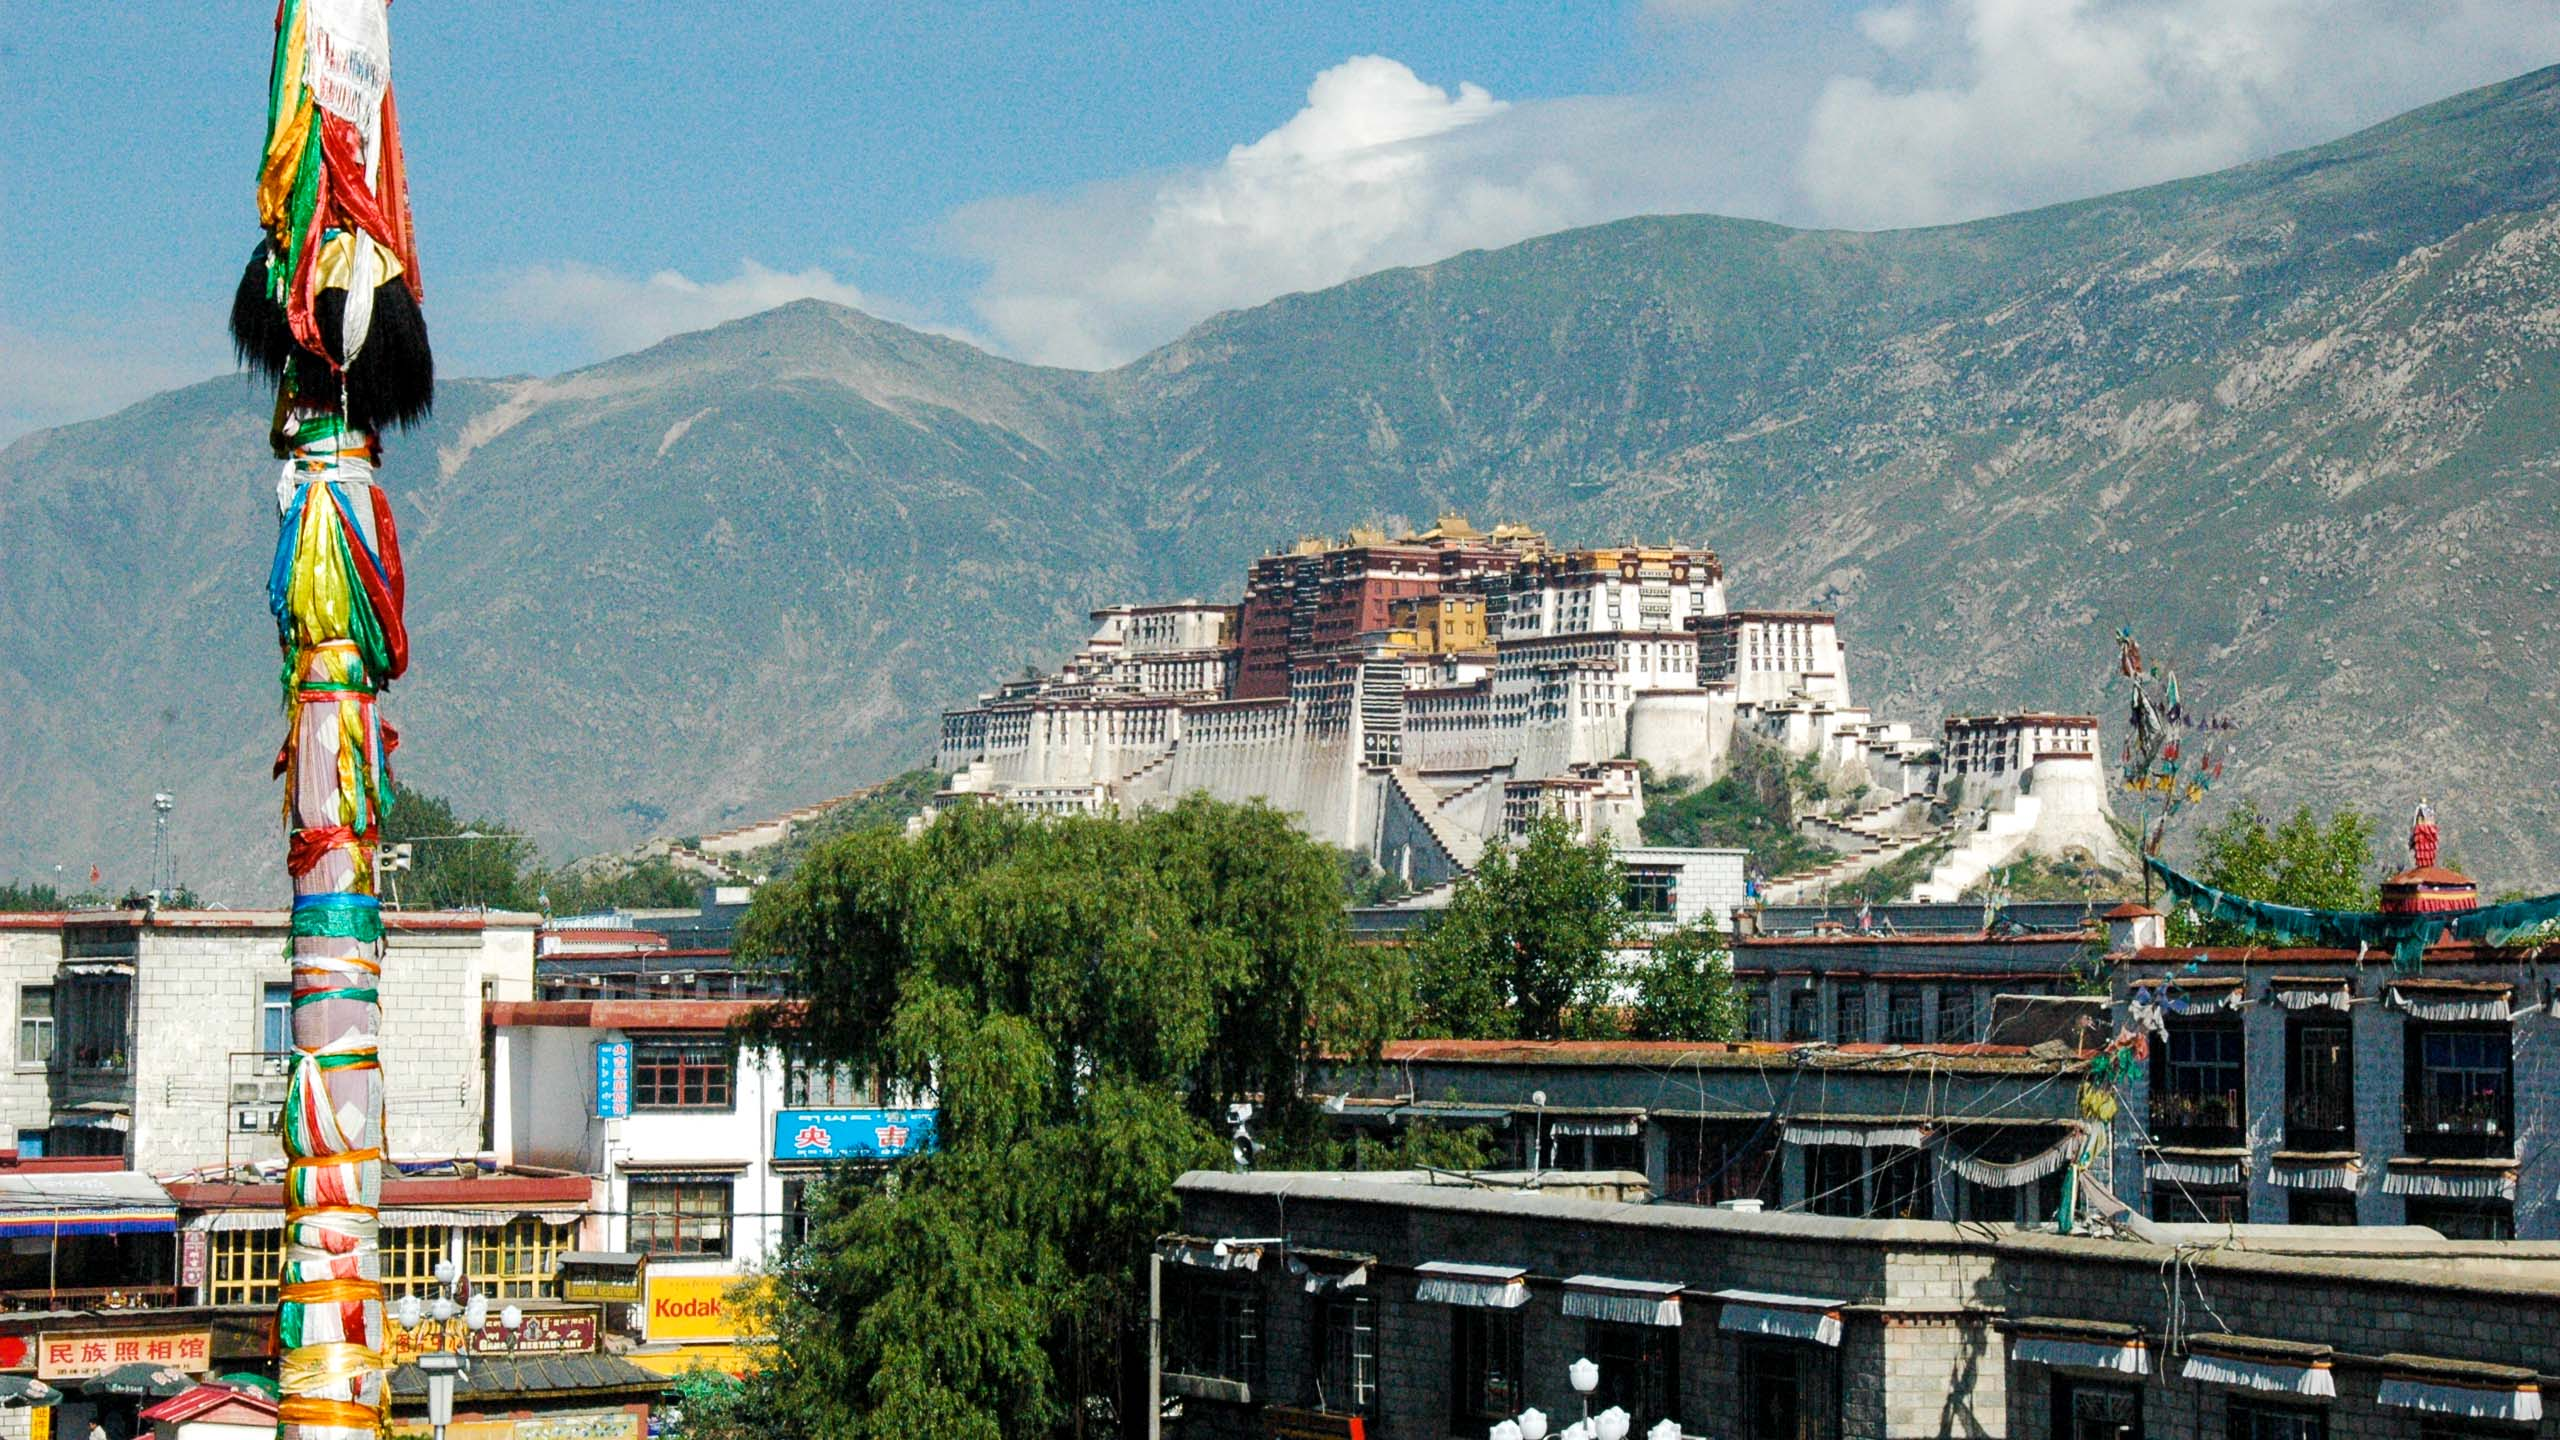 View of city in Tibet